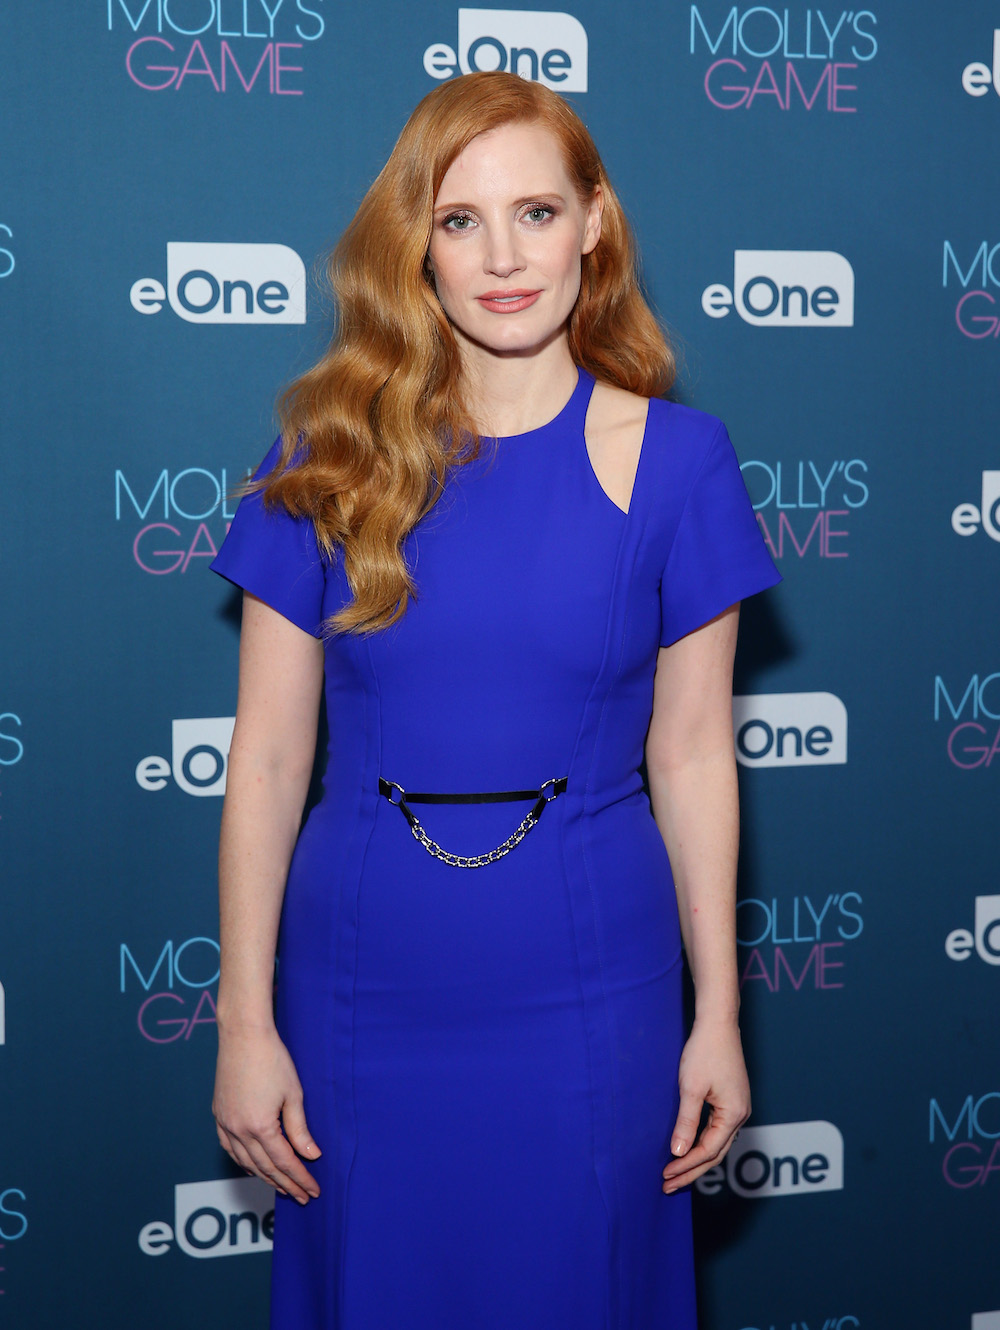 Jessica Chastain Just Cut Her Long Hair Into a Bob and It's the Style of Summer